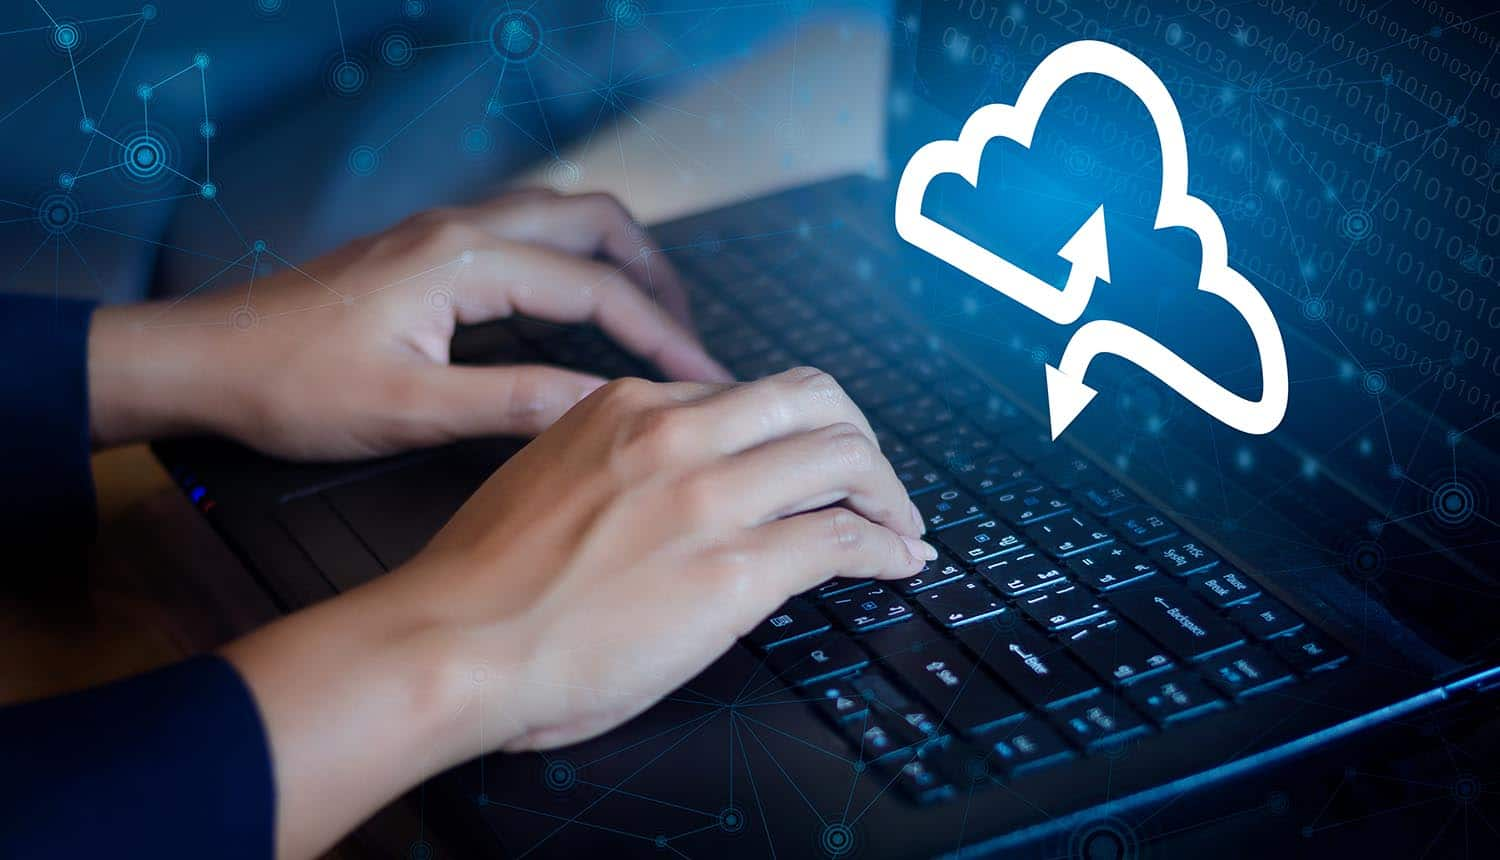 Hand on keyboard with cloud icon on monitor screen showing SaaS and shadow IT